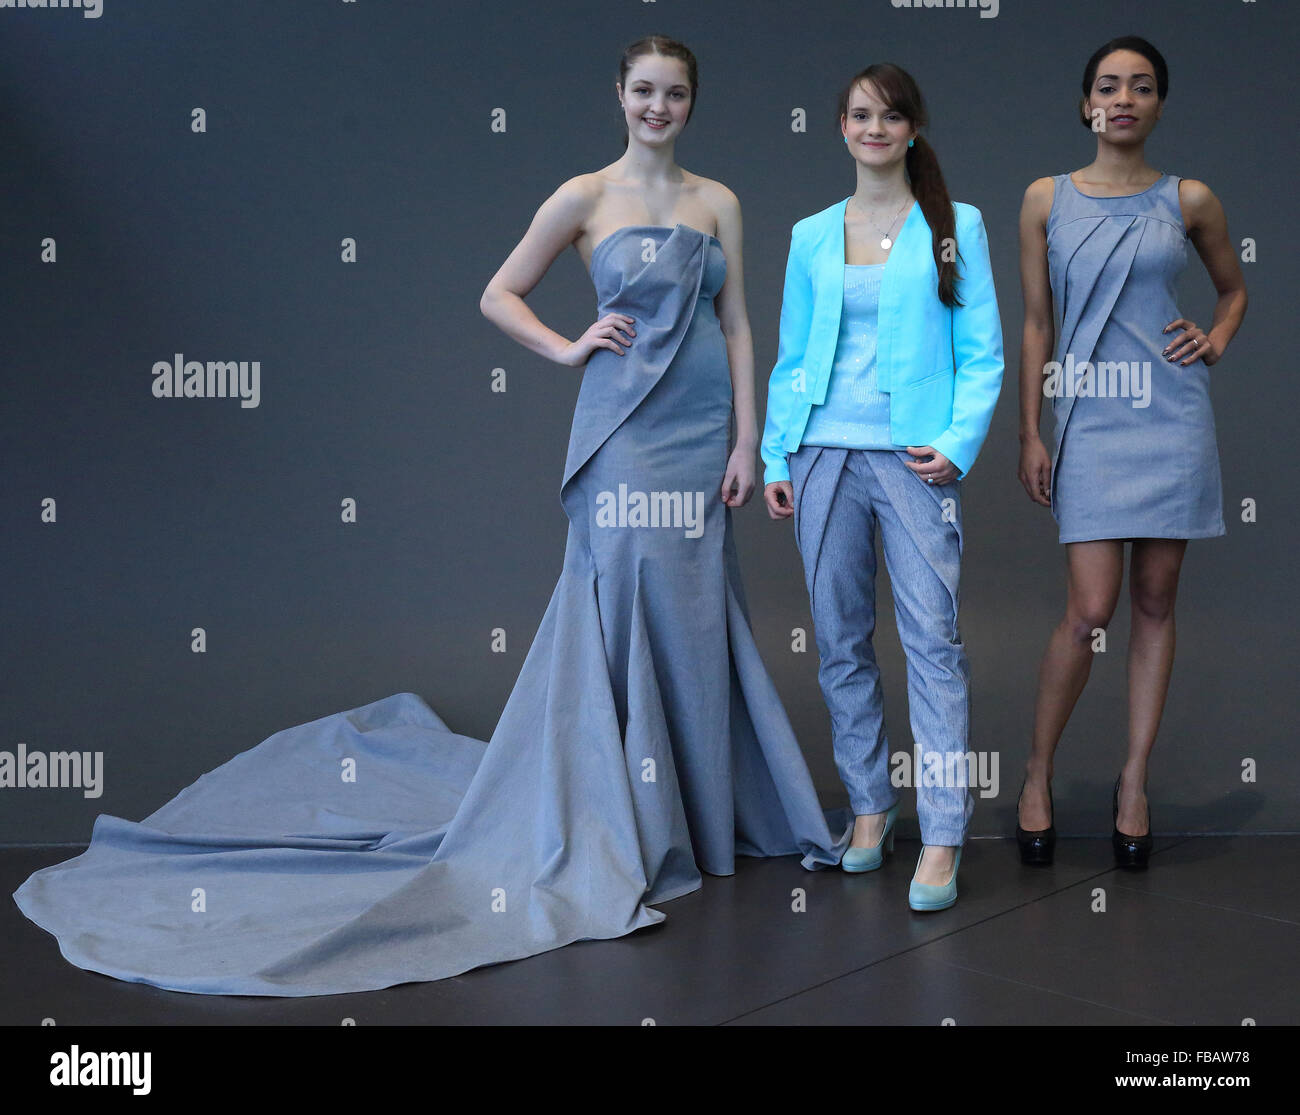 The Models Pia L And Fashion Designer Carolin Goldmann M At A Stock Photo Alamy